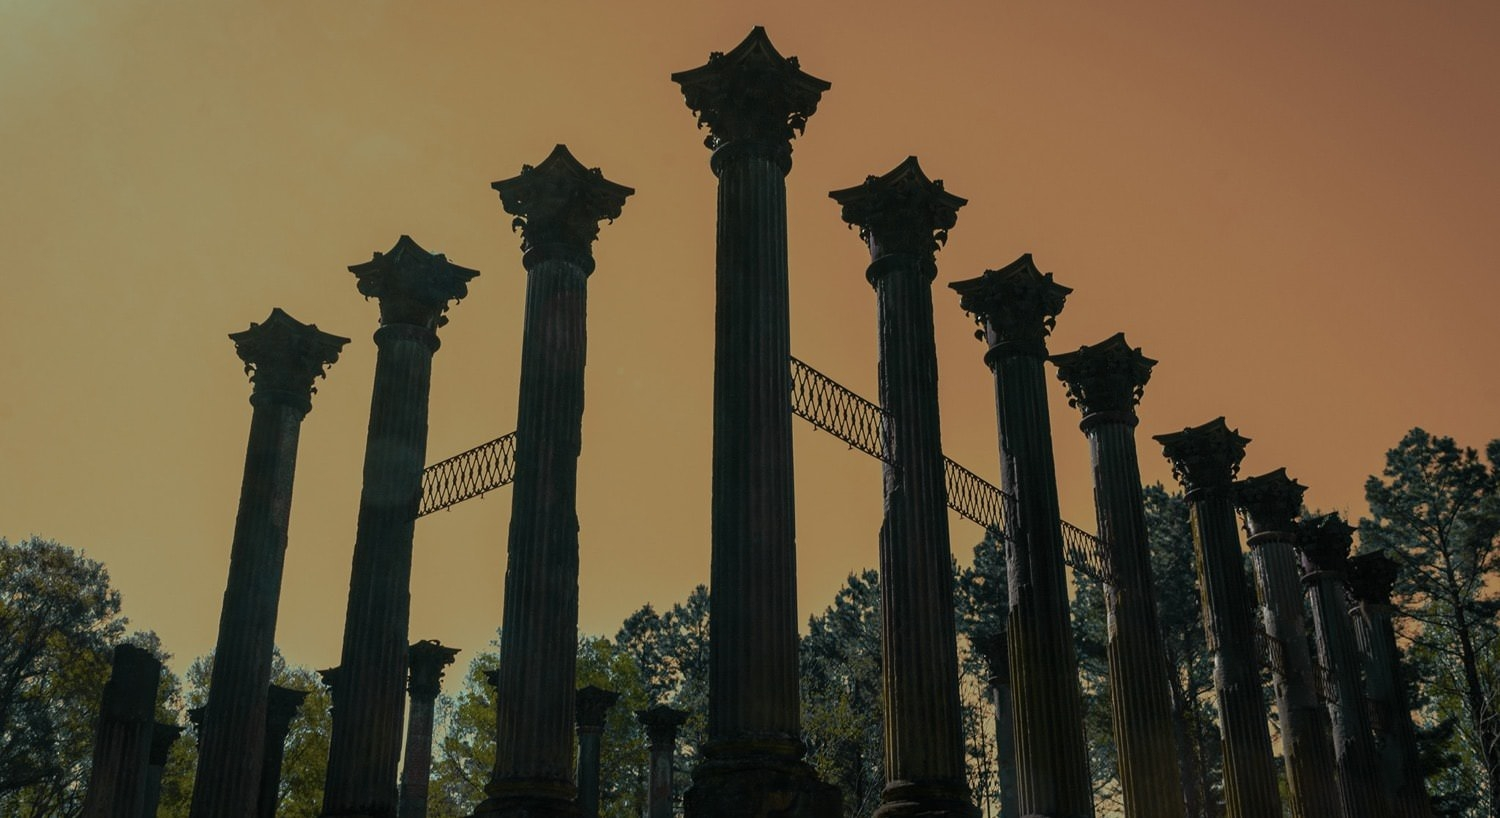 View of pillars reaching into the orange sky at dusk